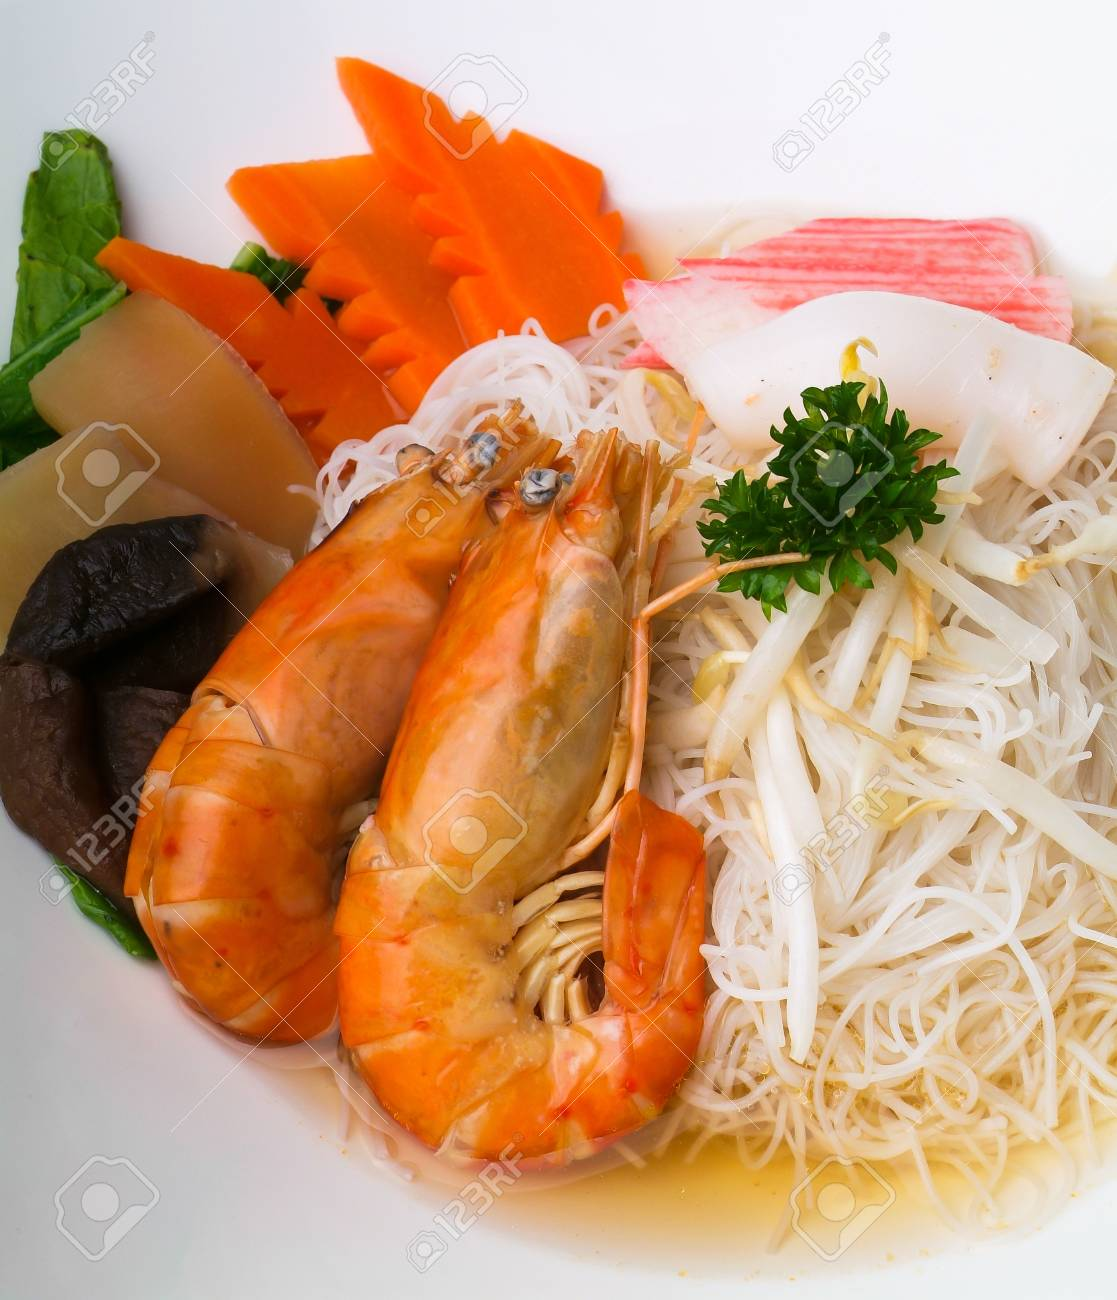 Prawn noodle - Malaysian food spicy noodles. Stock Photo - 14911212